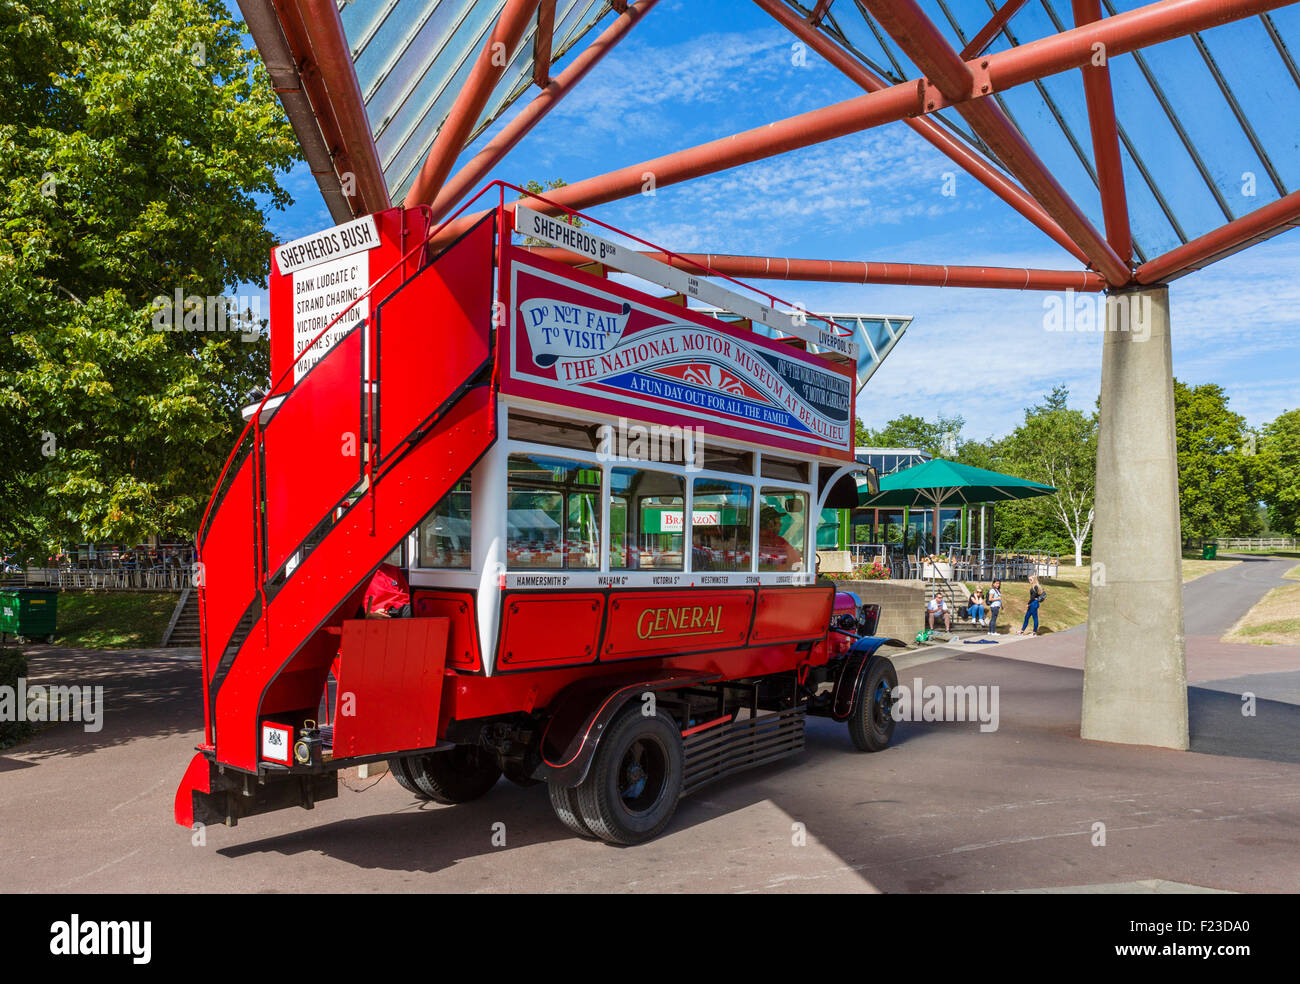 Old bus for transporting visitors, outside the National Motor Museum, Beaulieu, Hampshire, England, UK - Stock Image